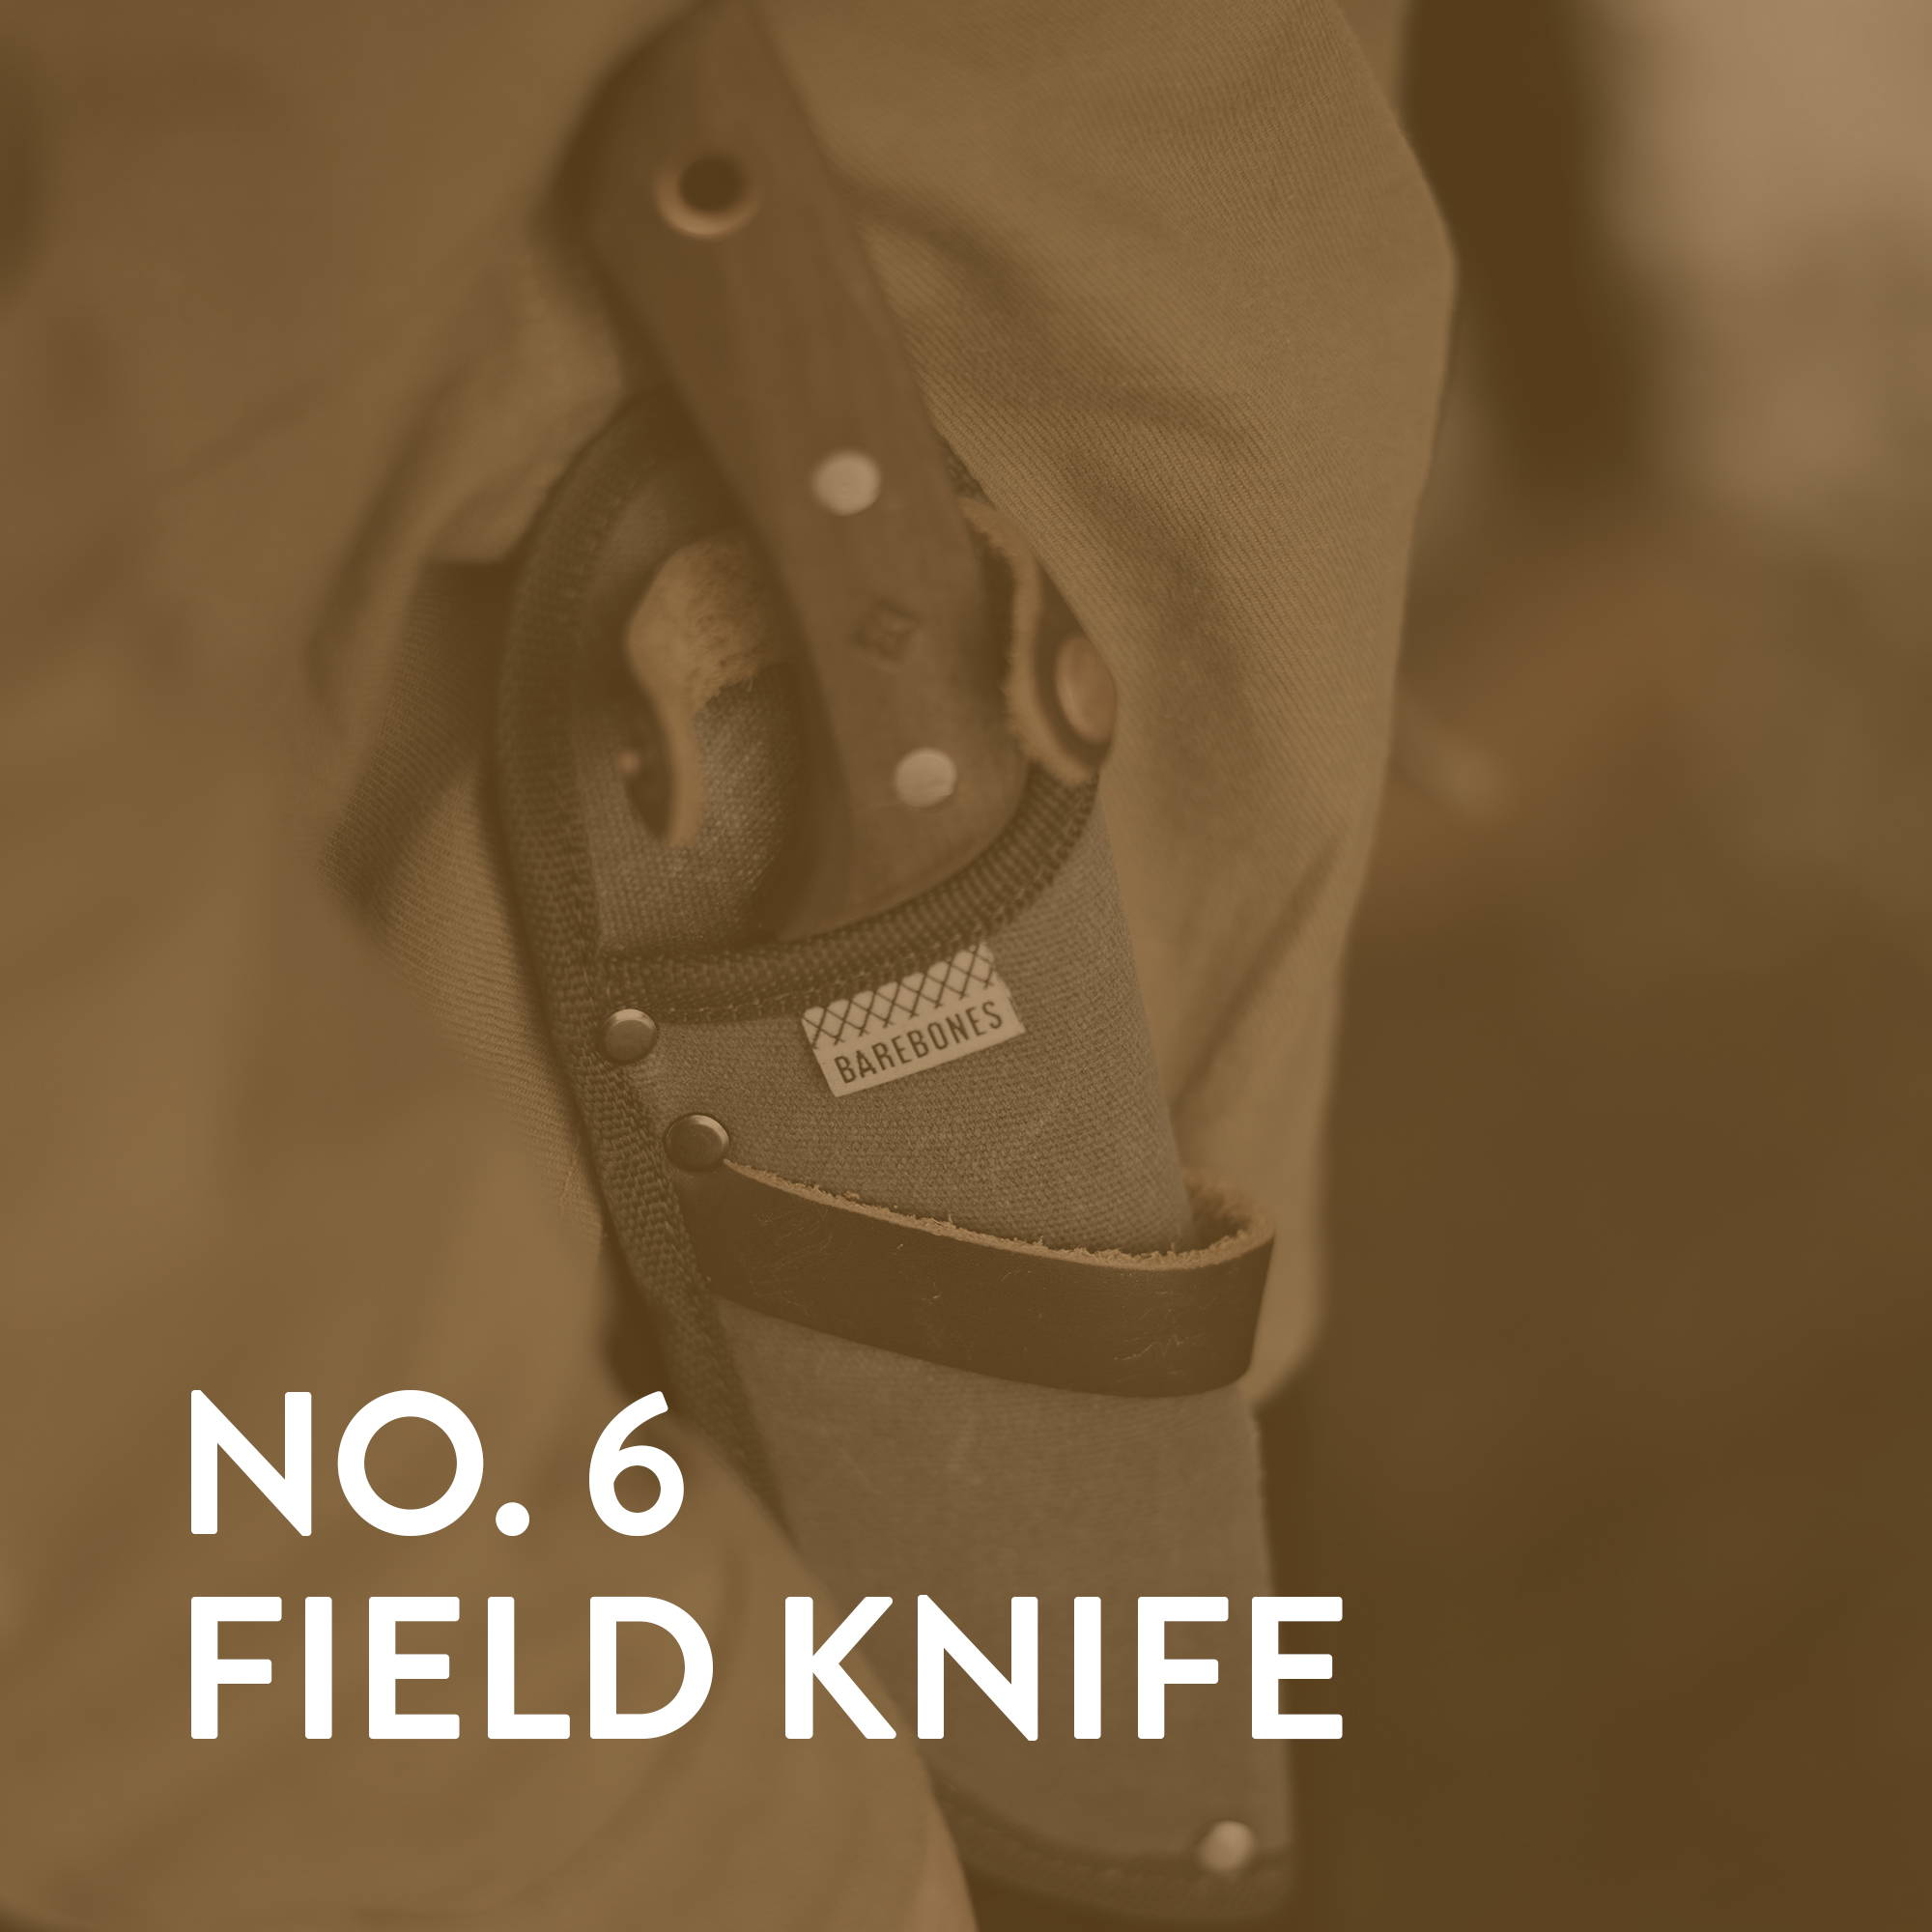 No. 6 Field Knife